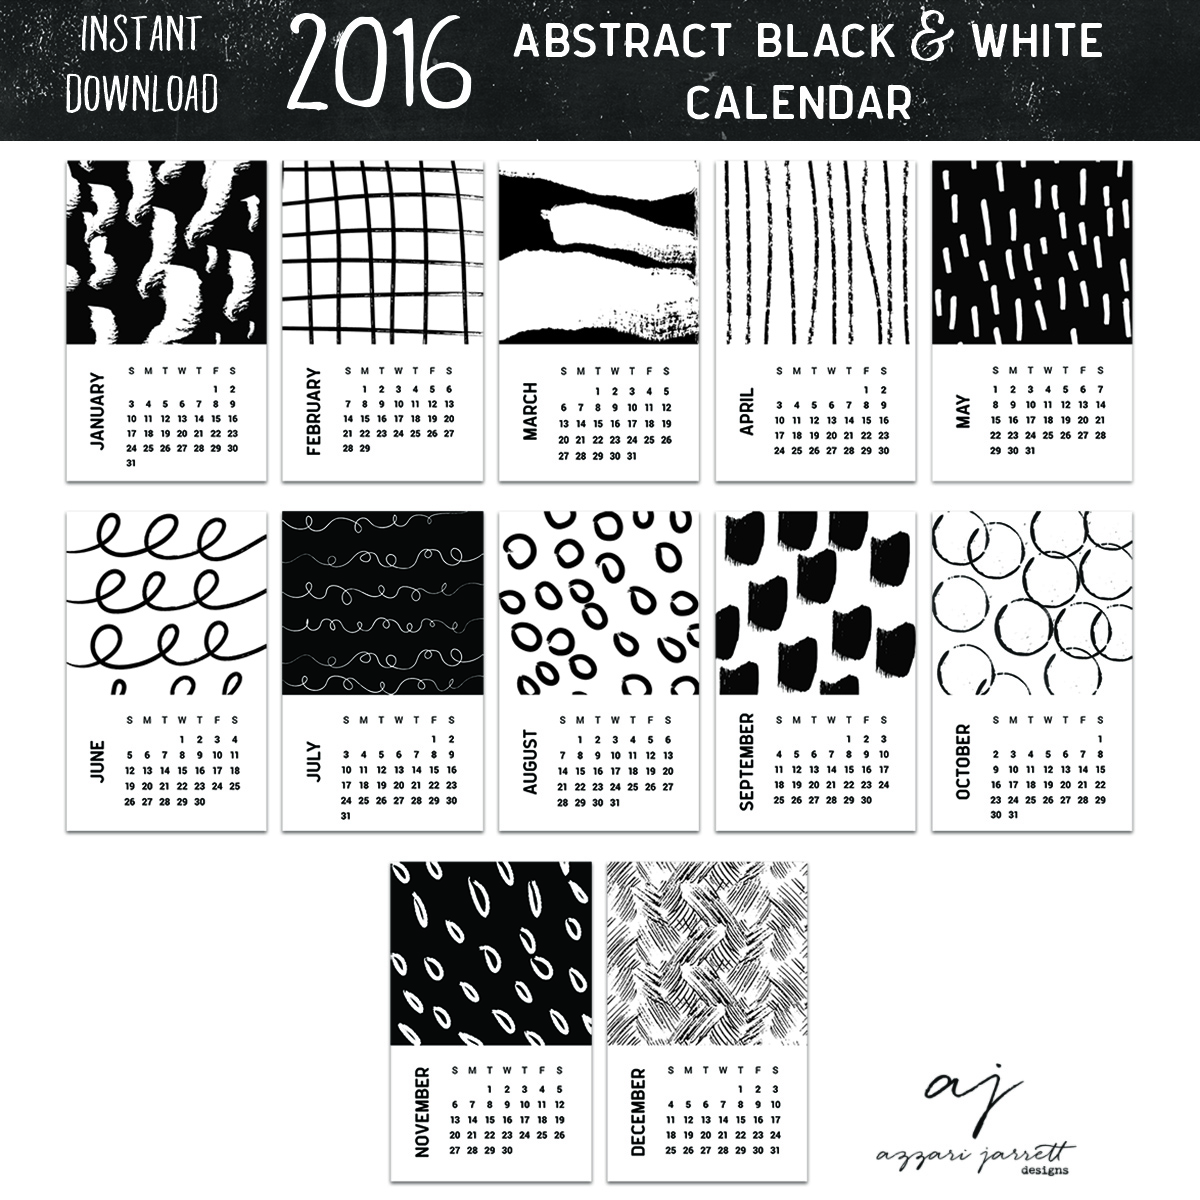 2016 Abstract Black and White Printable Calendar | Azzari Jarrett